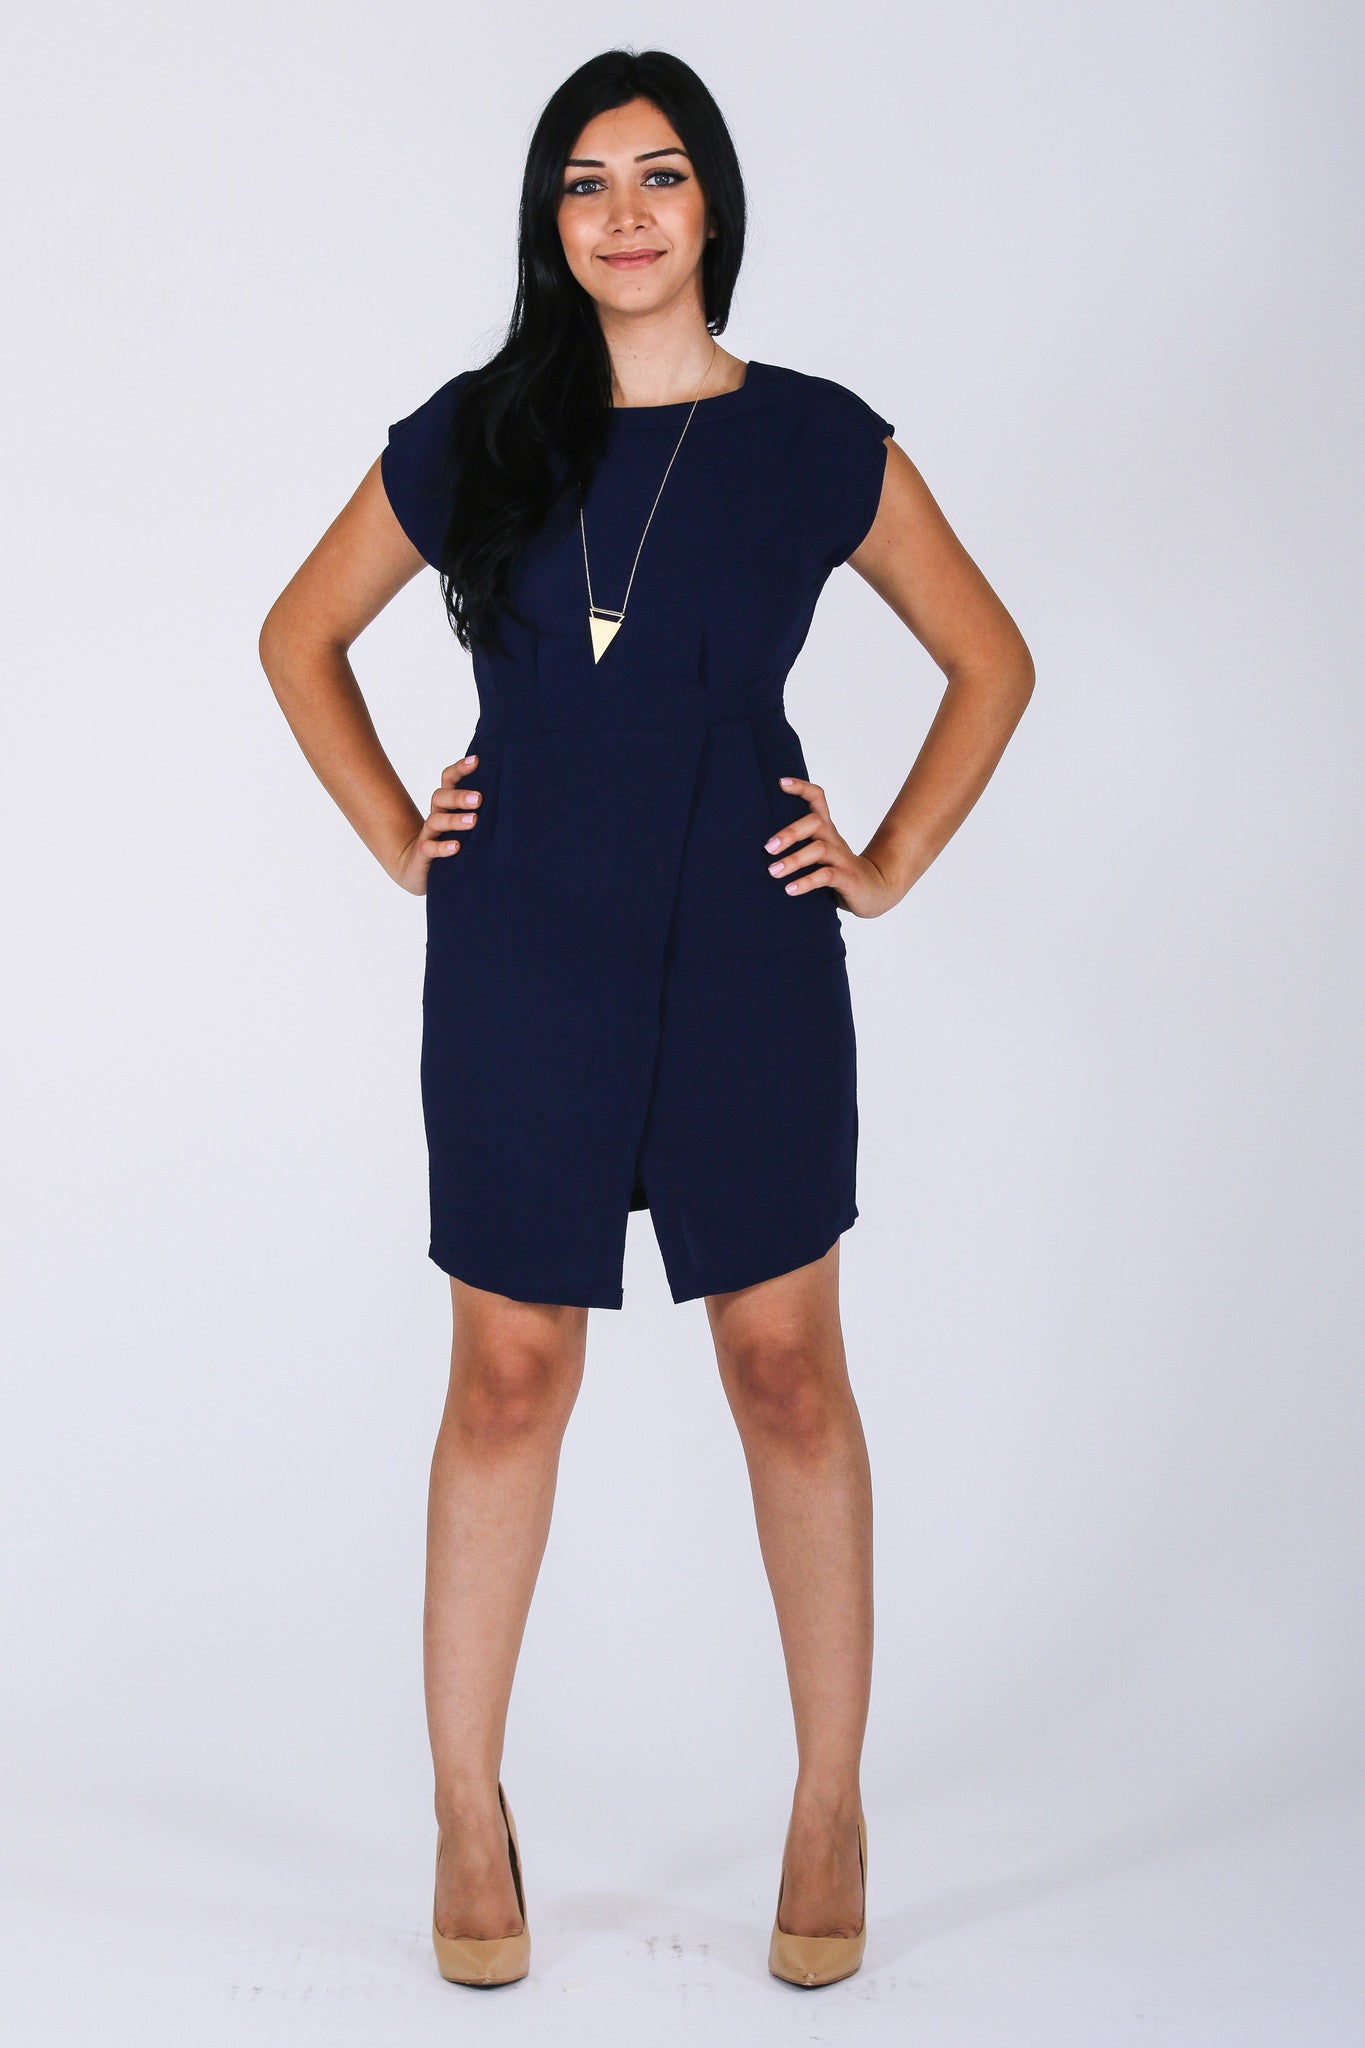 Navy Blue 9 to 5 Dress - Mod Owl